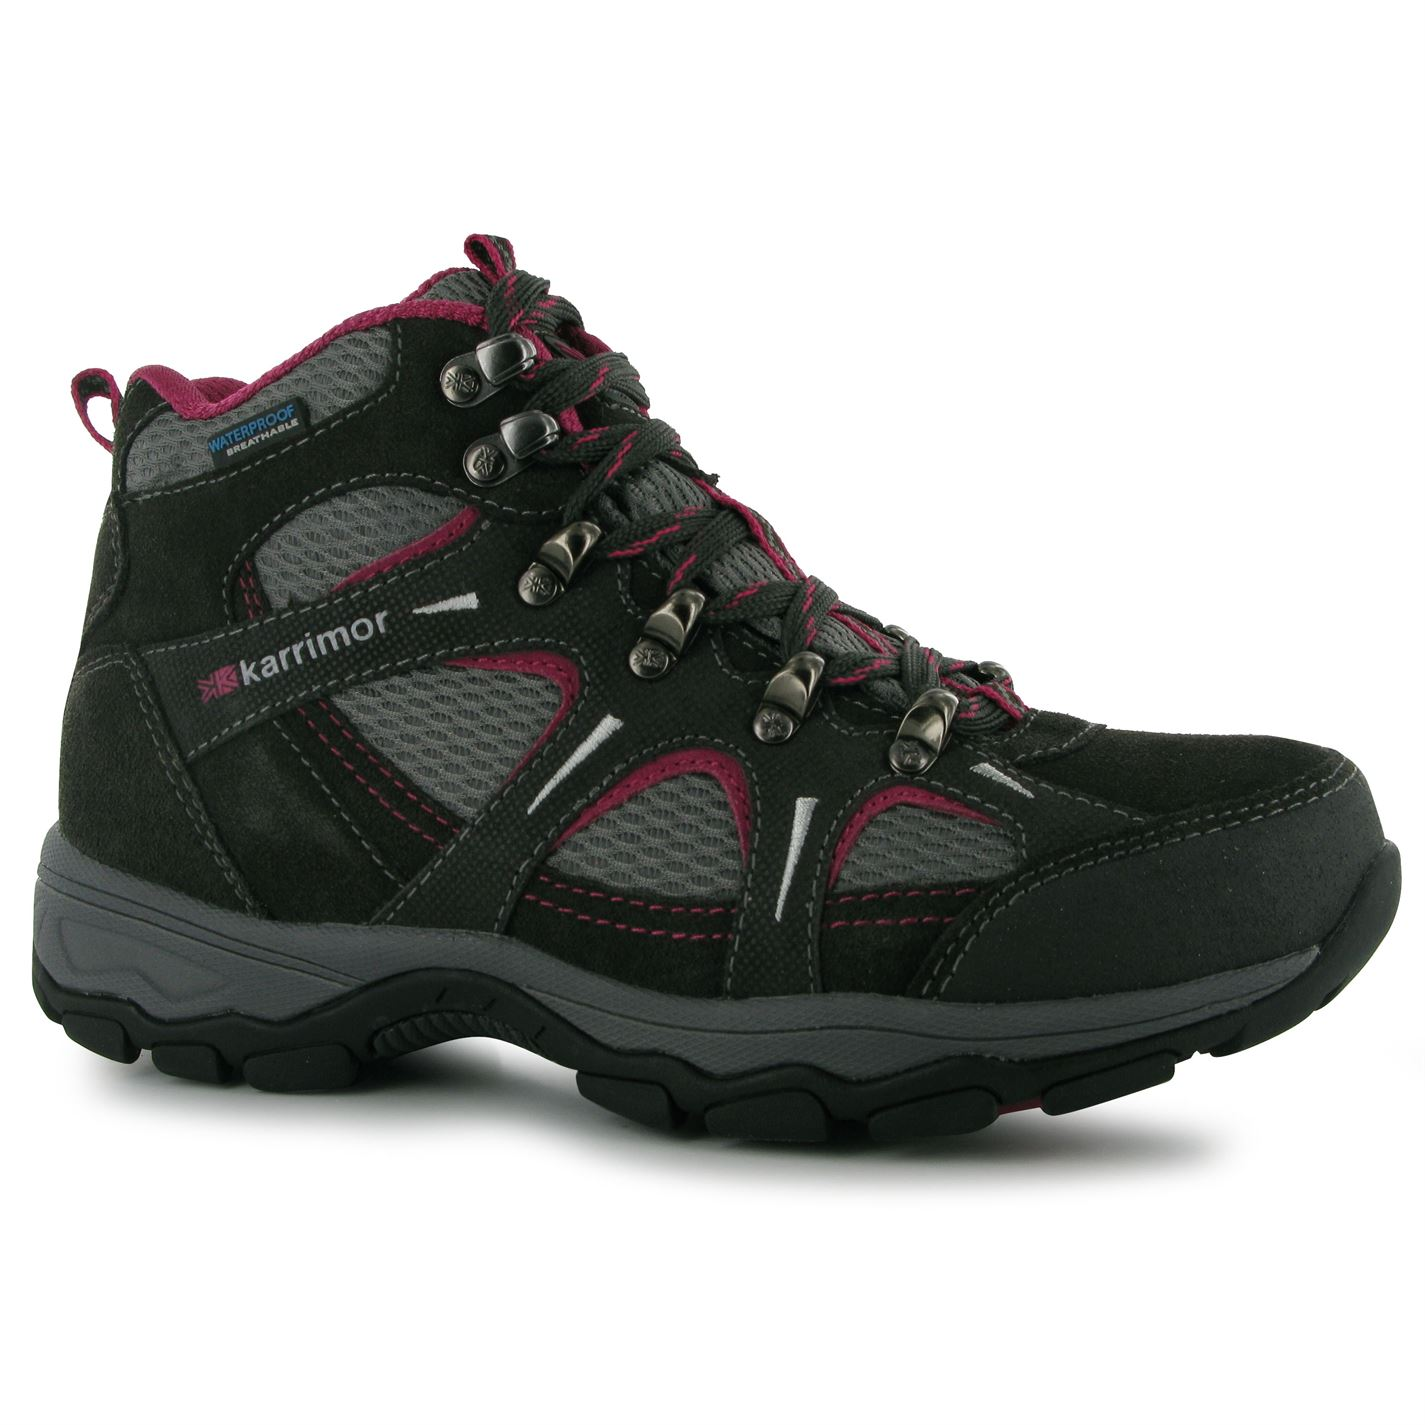 Ladies Walking Boots: Comfort Must Be Your First Concern